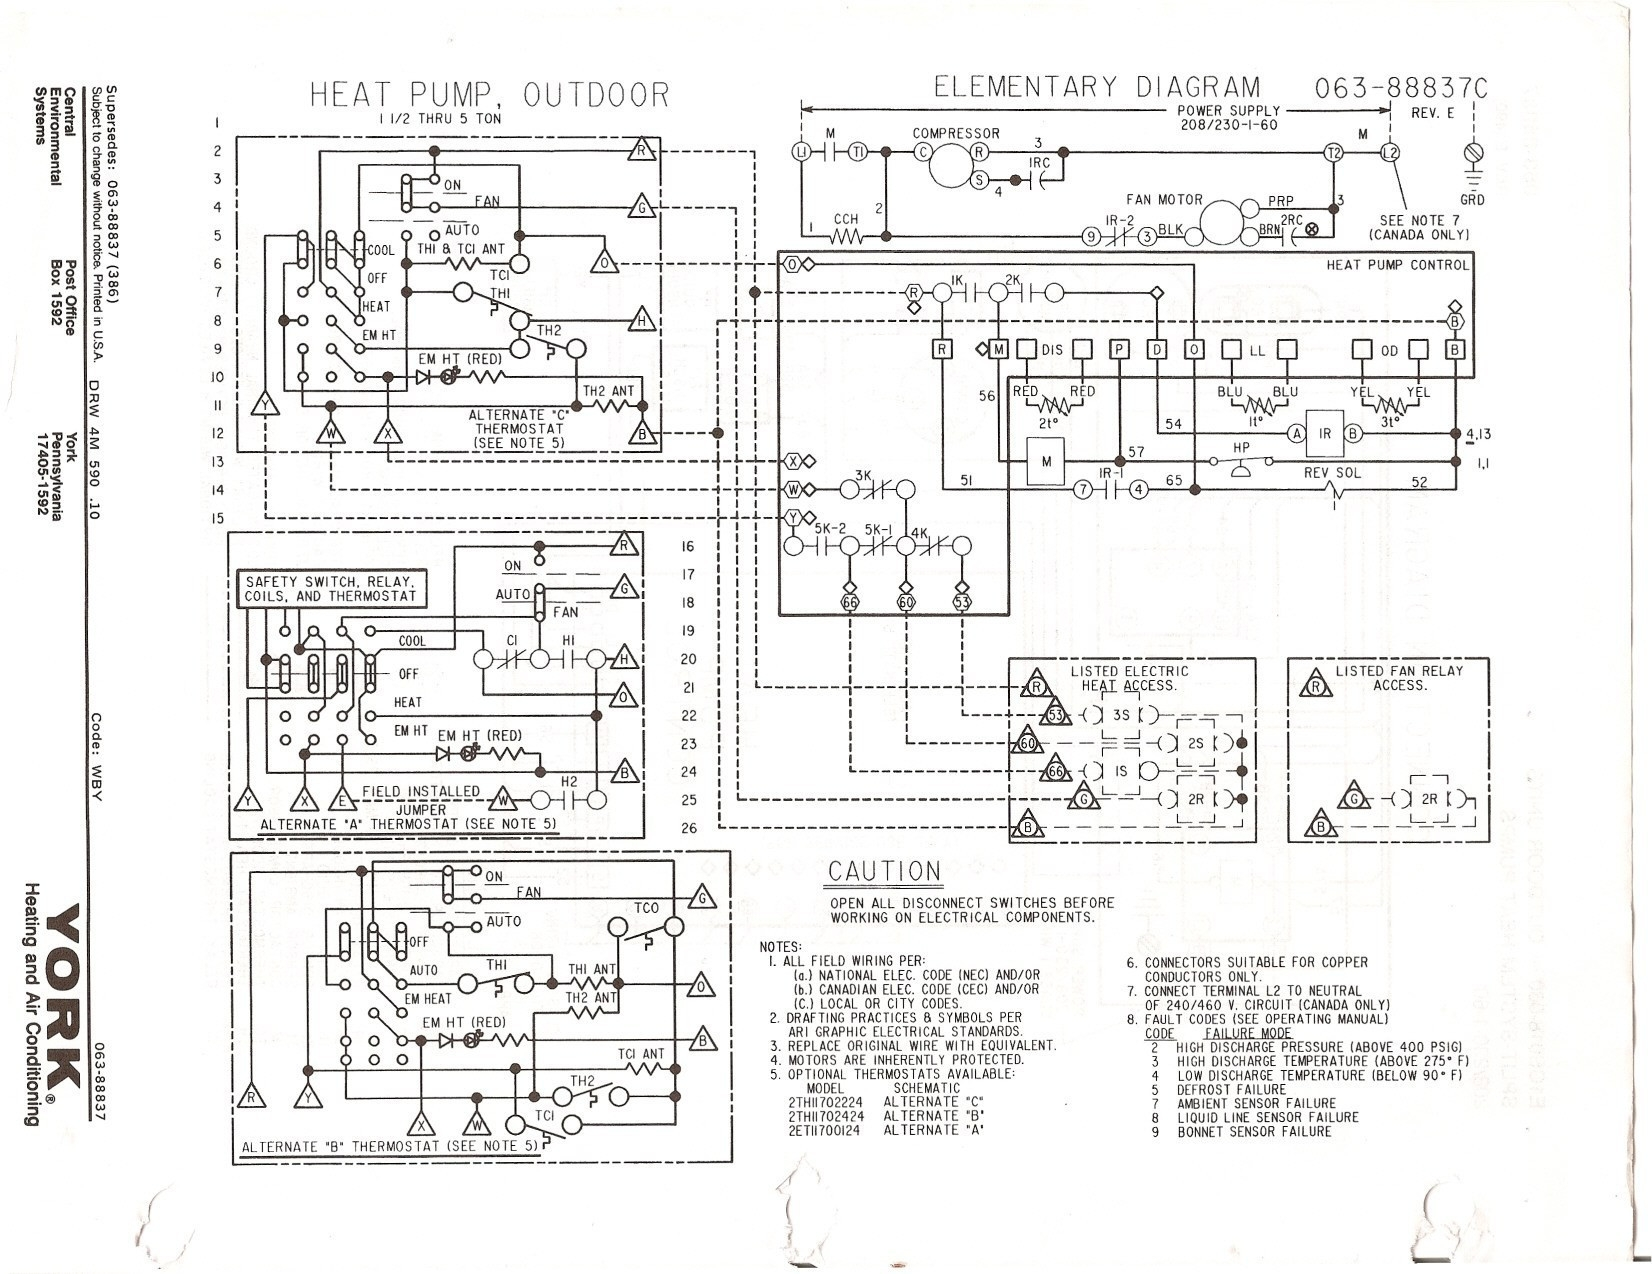 circuit goodman diagram board wiring gpg1336090m41aa goodman control board wiring diagram goodman defrost board wiring diagram | free wiring diagram #2